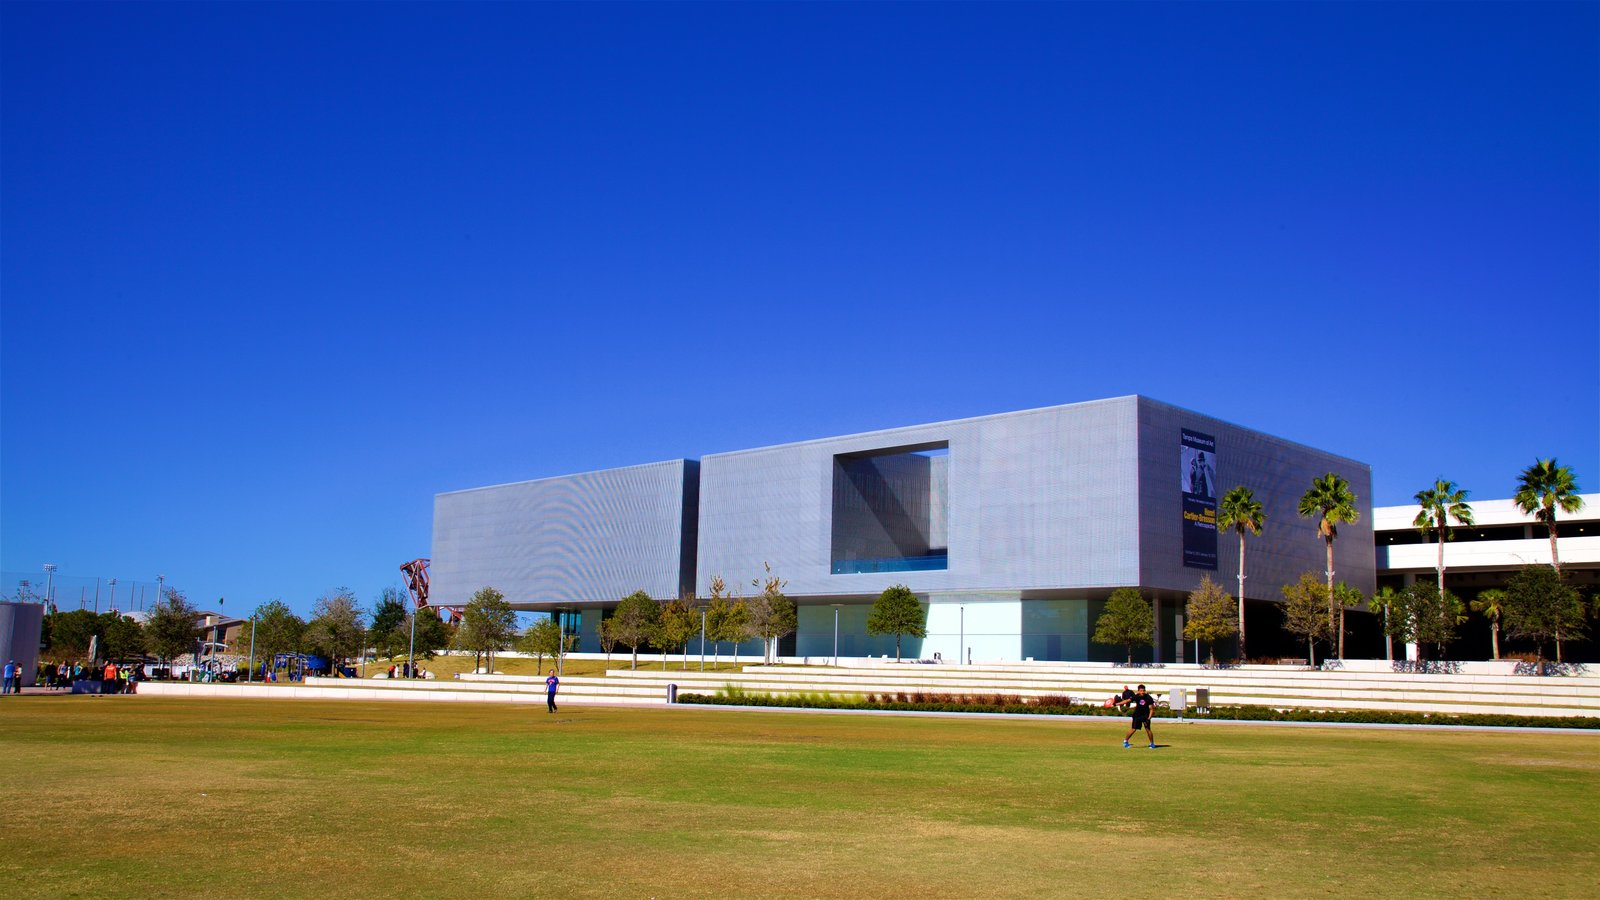 Modern Architecture Tampa tampa museum of art pictures: view photos & images of tampa museum